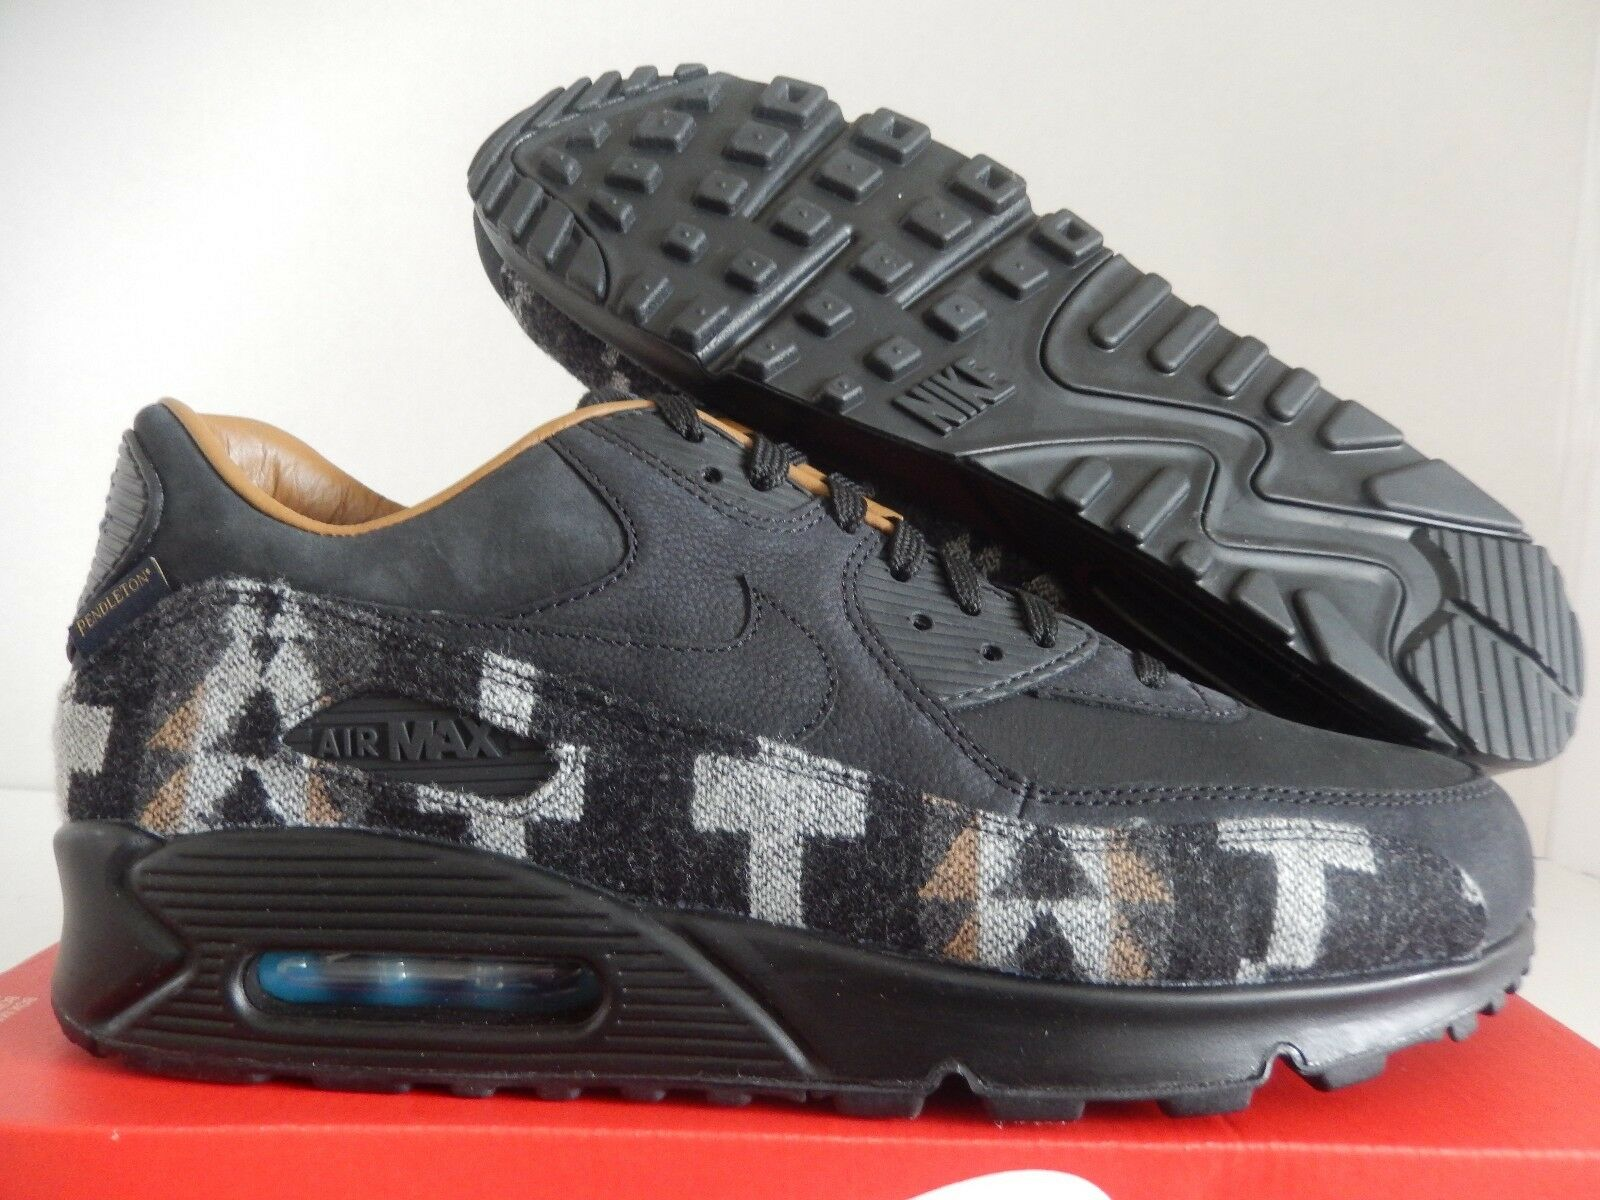 Nike Air Max 90 Pendleton QS Black